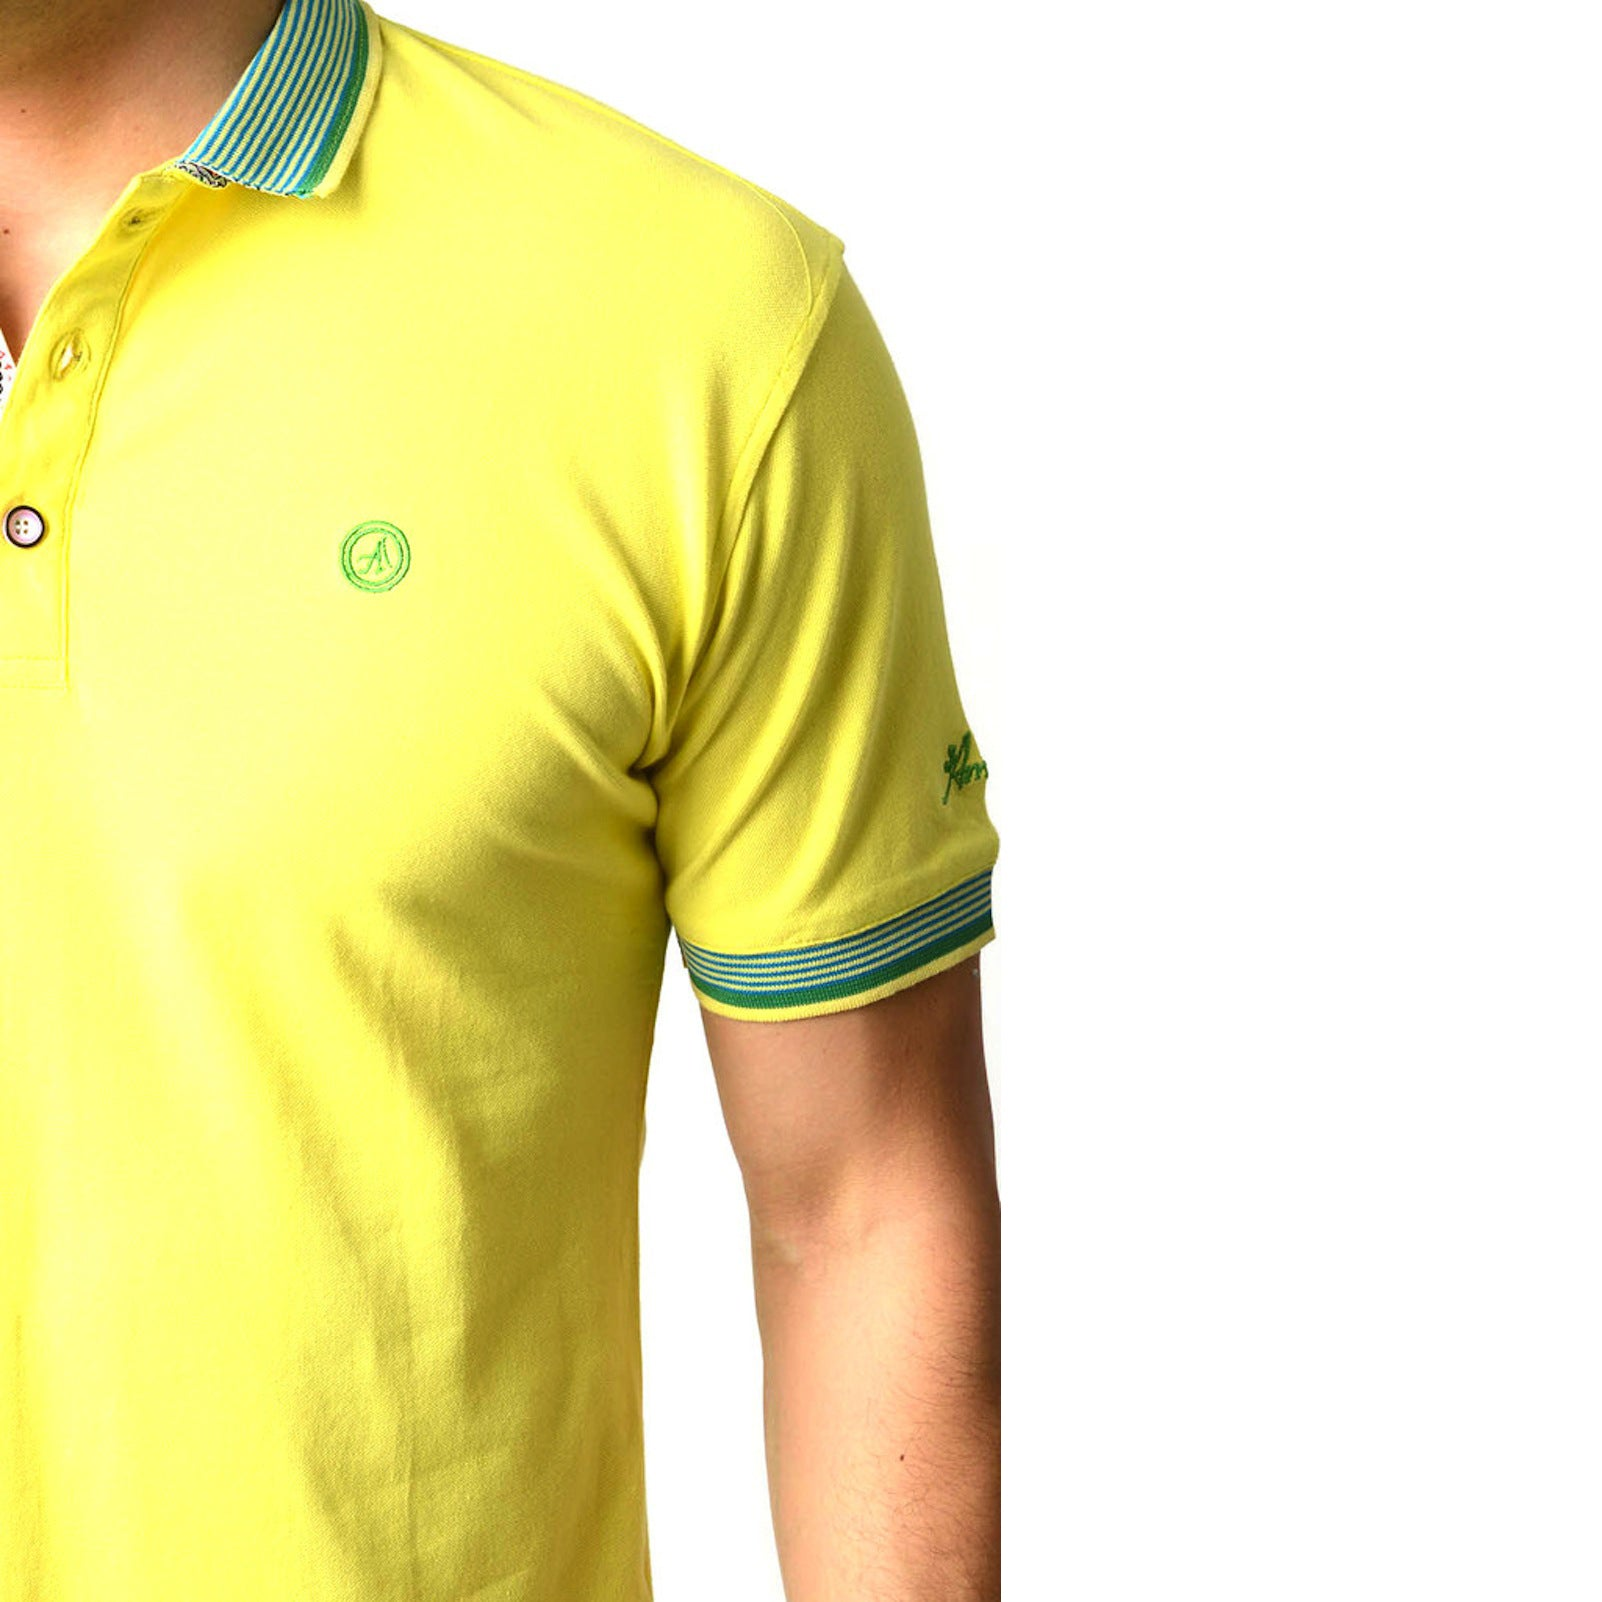 Men's Yellow - Paisley Turkey Slim Fit Mesh Polo Shirt ( Size - Only XS ) - Amedeo Exclusive